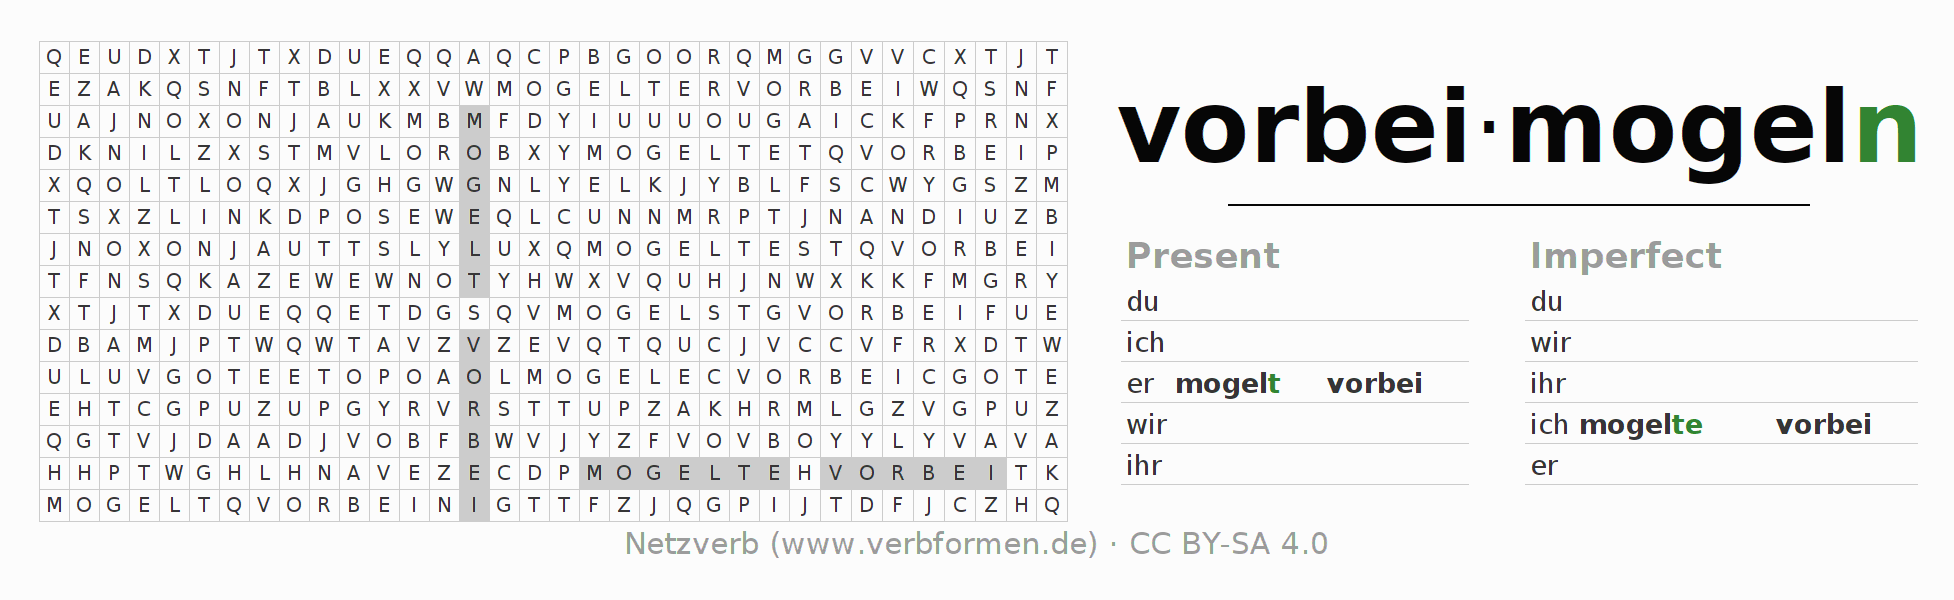 Word search puzzle for the conjugation of the verb vorbeimogeln